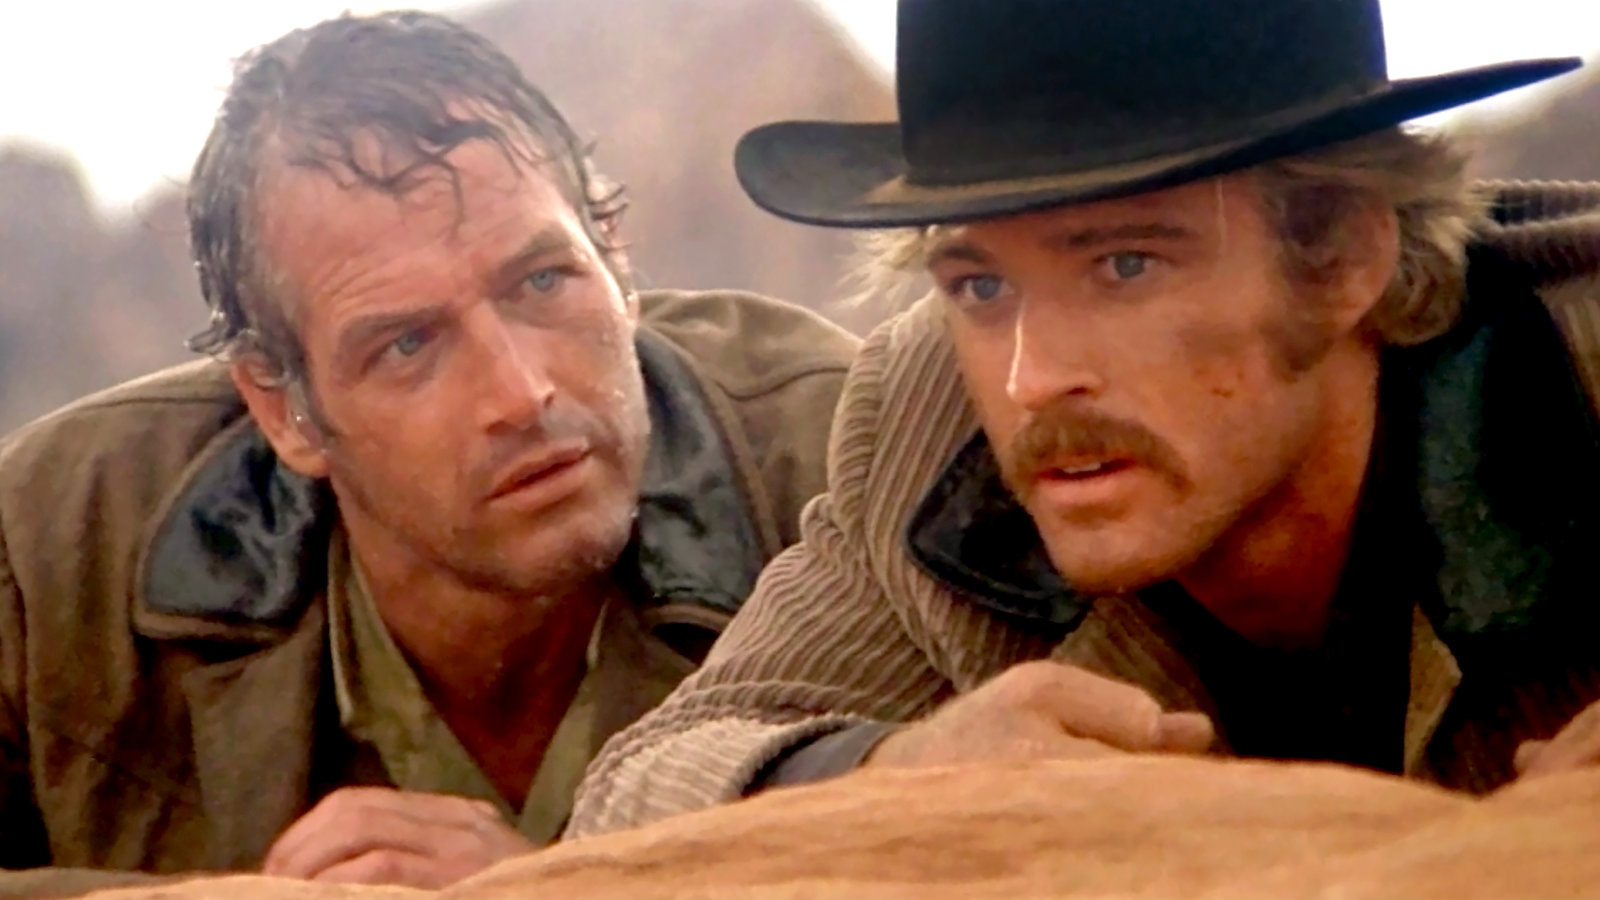 Robert LeRoy Parker and Harry Longabaugh, Butch Cassidy and the Sundance Kid (1969)